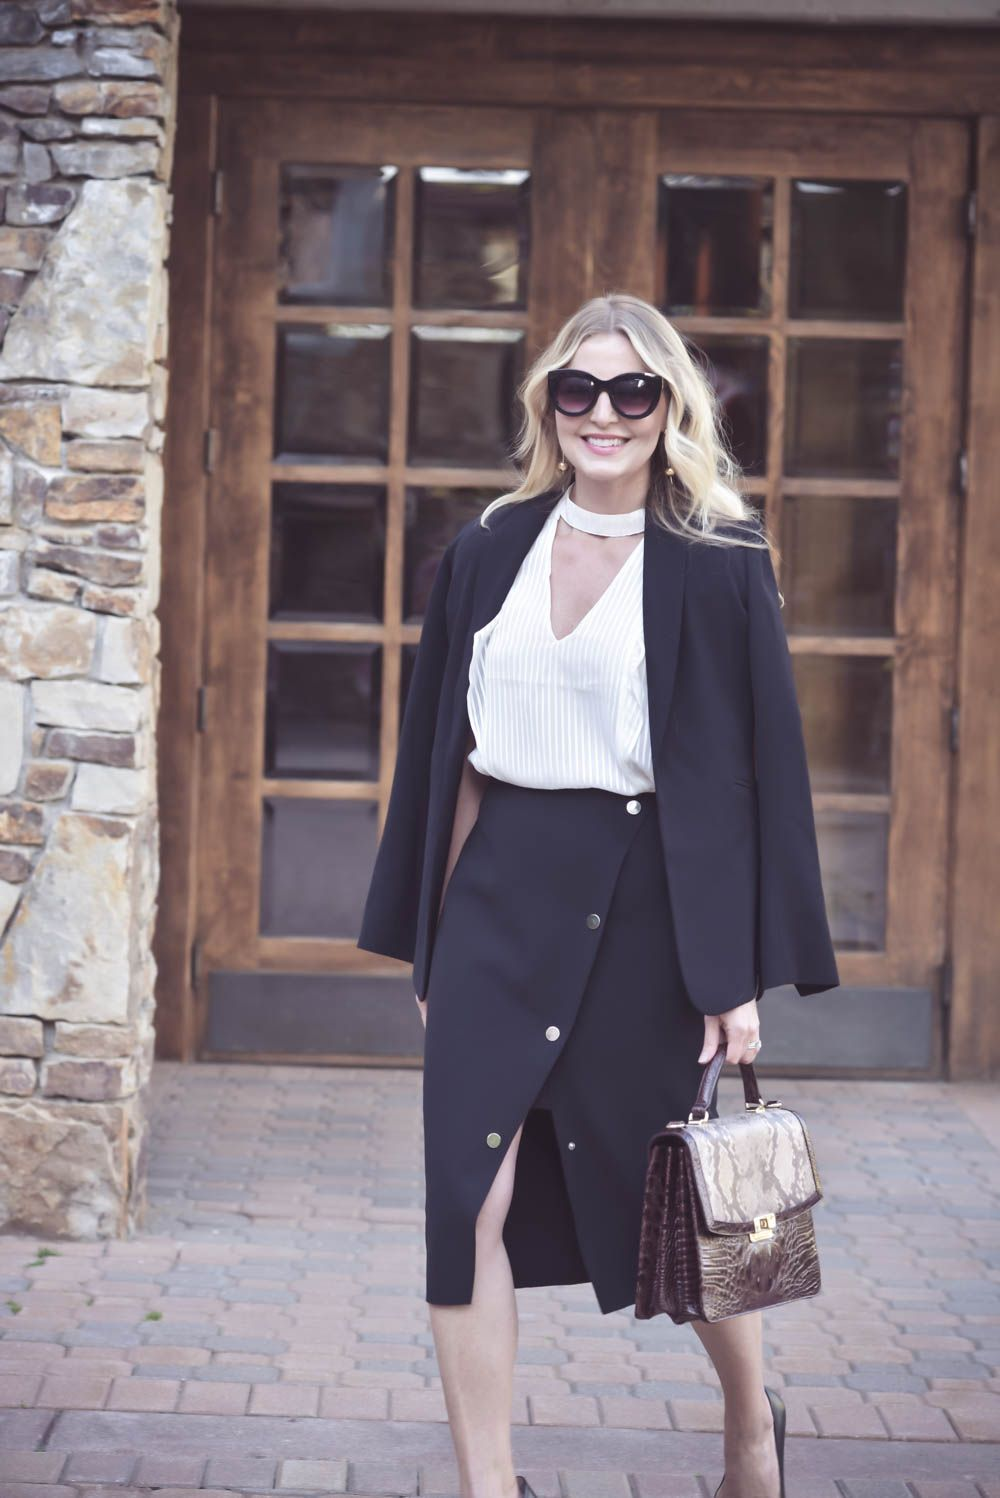 Five modern and sophisticated business casual outfit ideas including pinstripe pants, culottes, power dress, pencil skirt, and winter pastels.